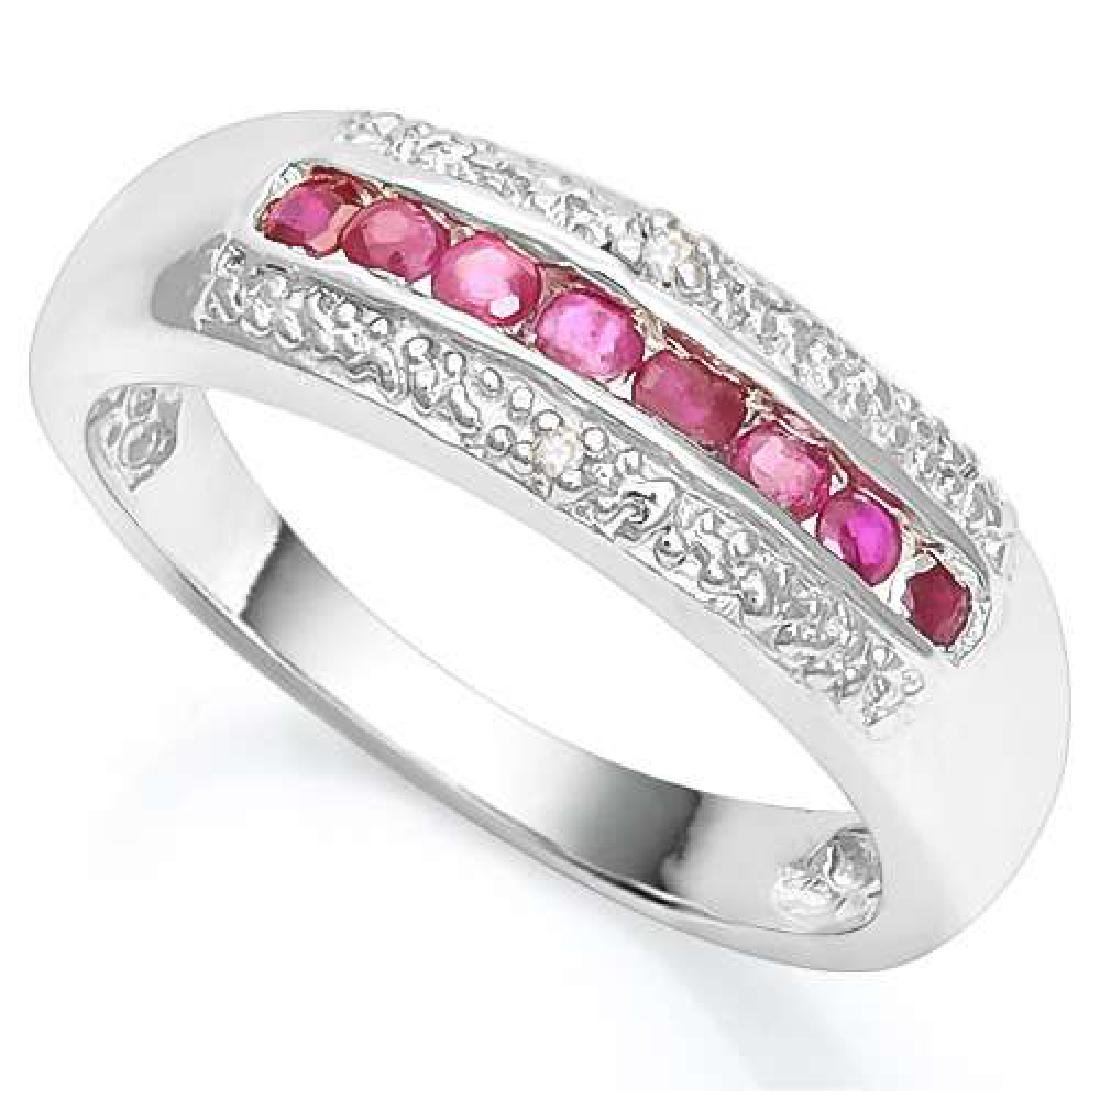 2/5 CTW RUBY & DIAMOND 925 STERLING SILVER RING